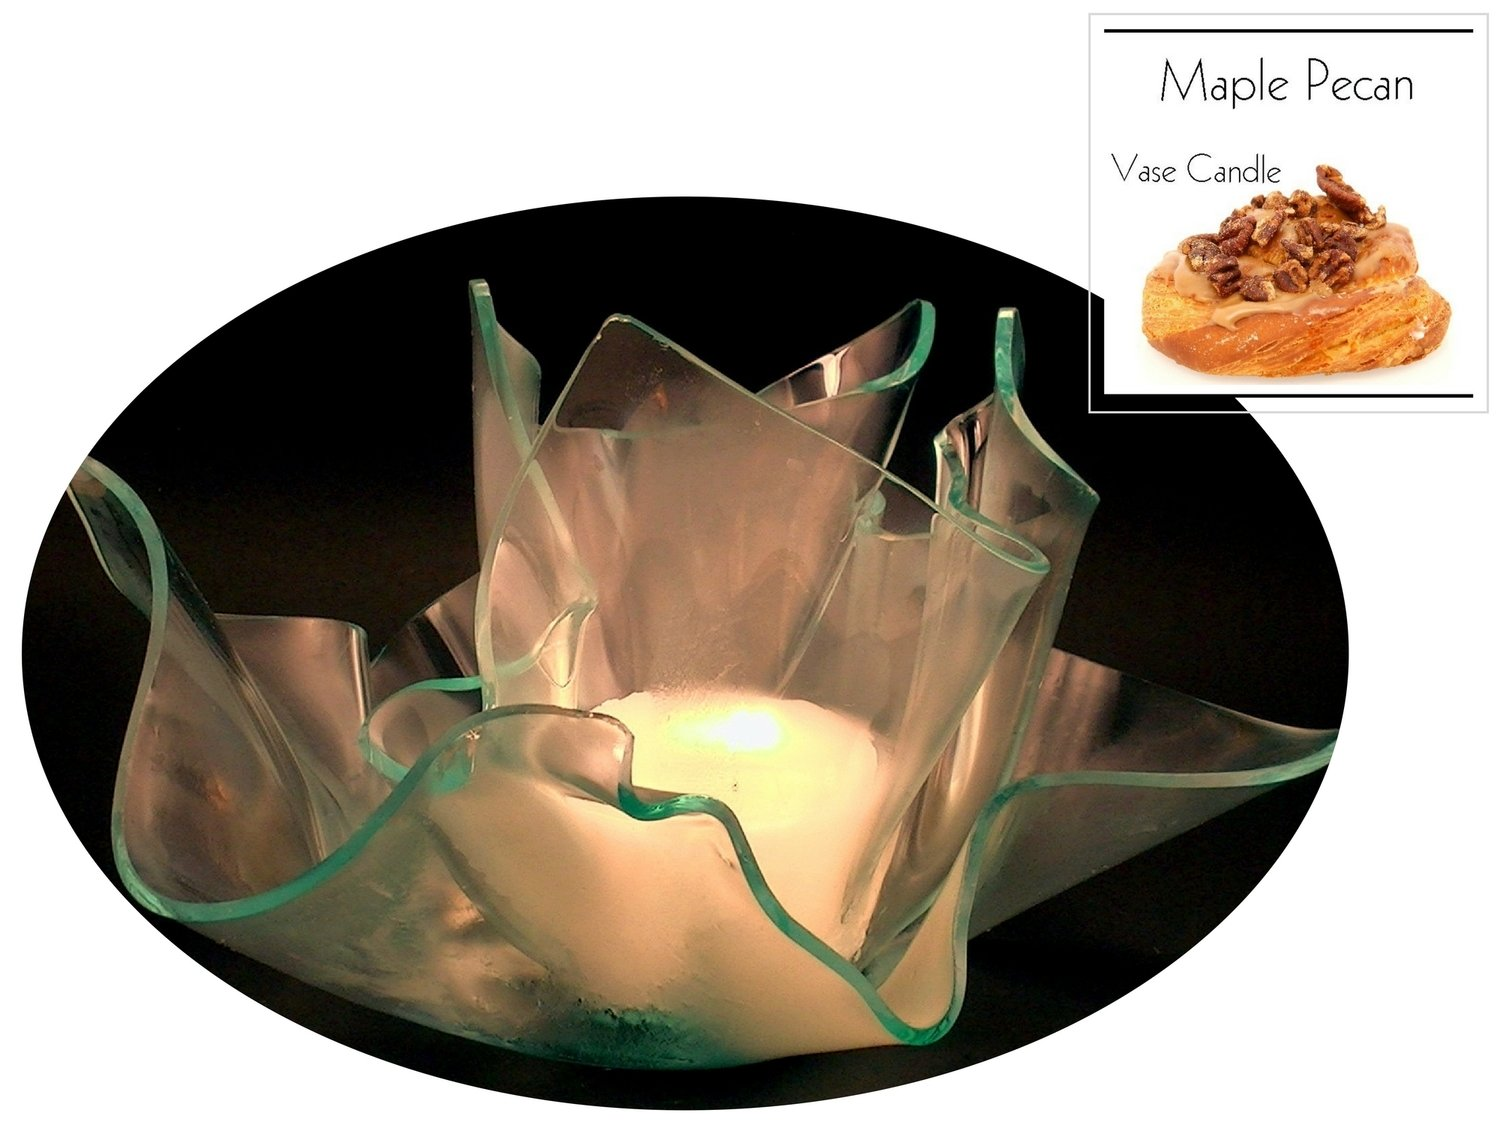 2 Maple Pecan Candle Refills | Clear Satin Vase & Dish Set